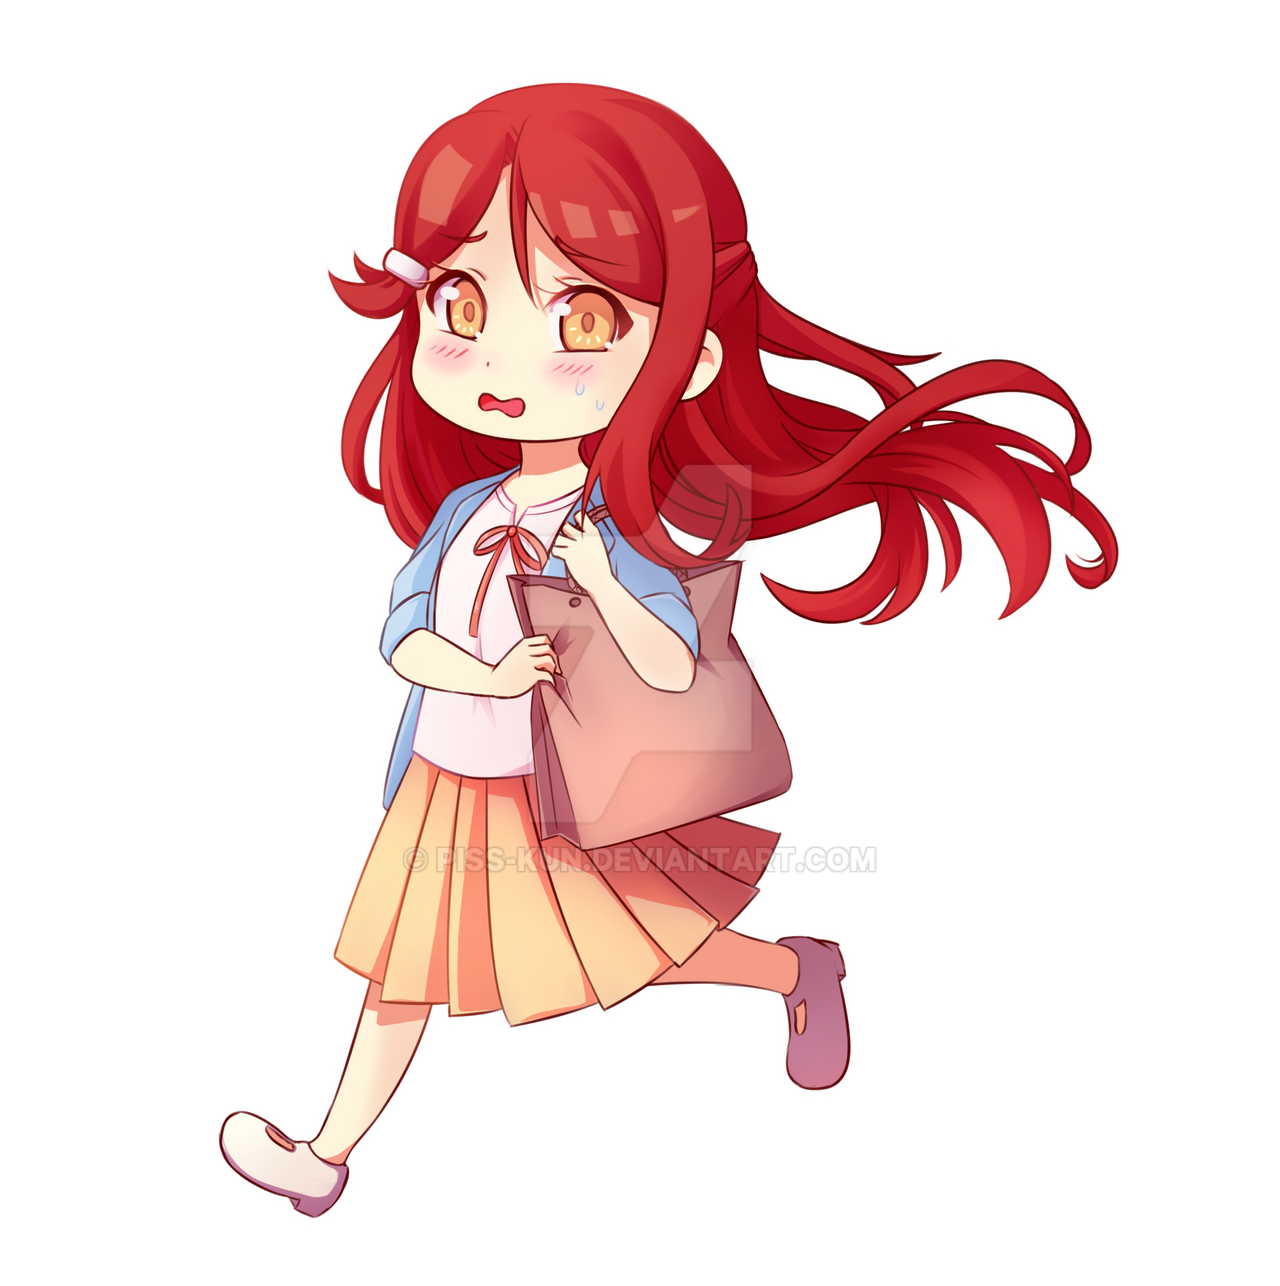 What is in the bag, Riko-chan? by Piss-kun